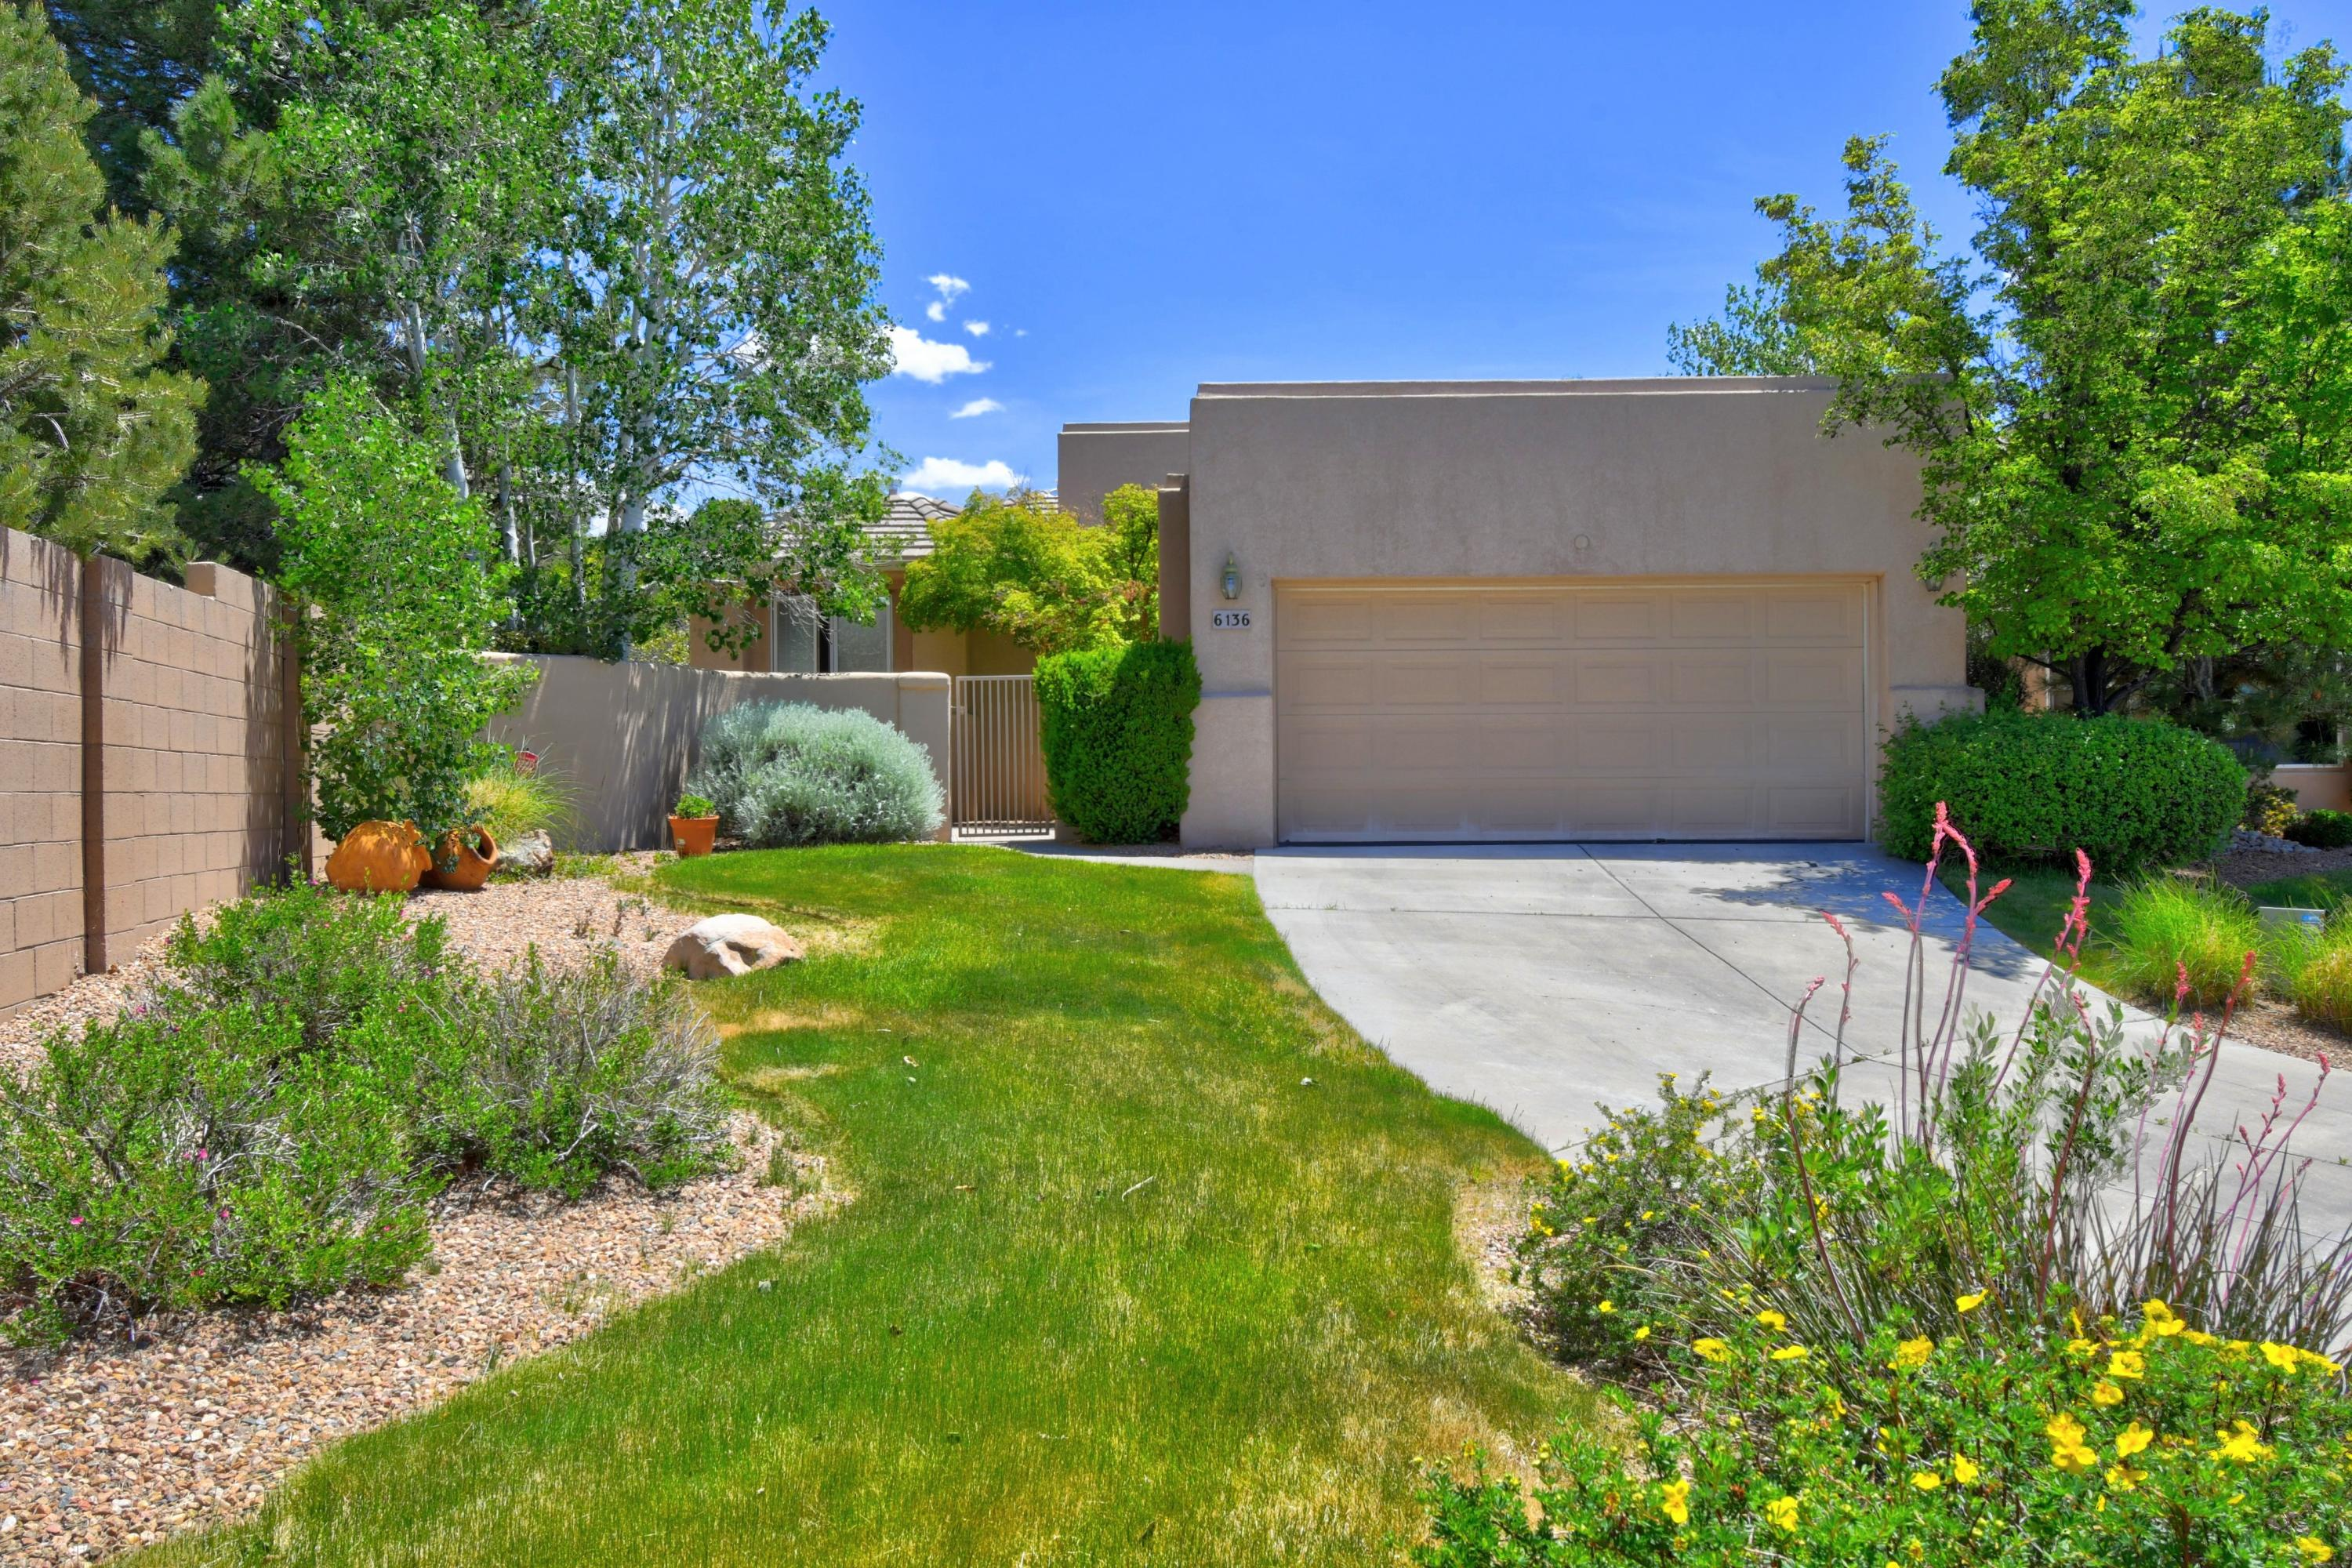 6136 PURPLE ASTER Lane NE, Albuquerque, NM 87111 - Albuquerque, NM real estate listing